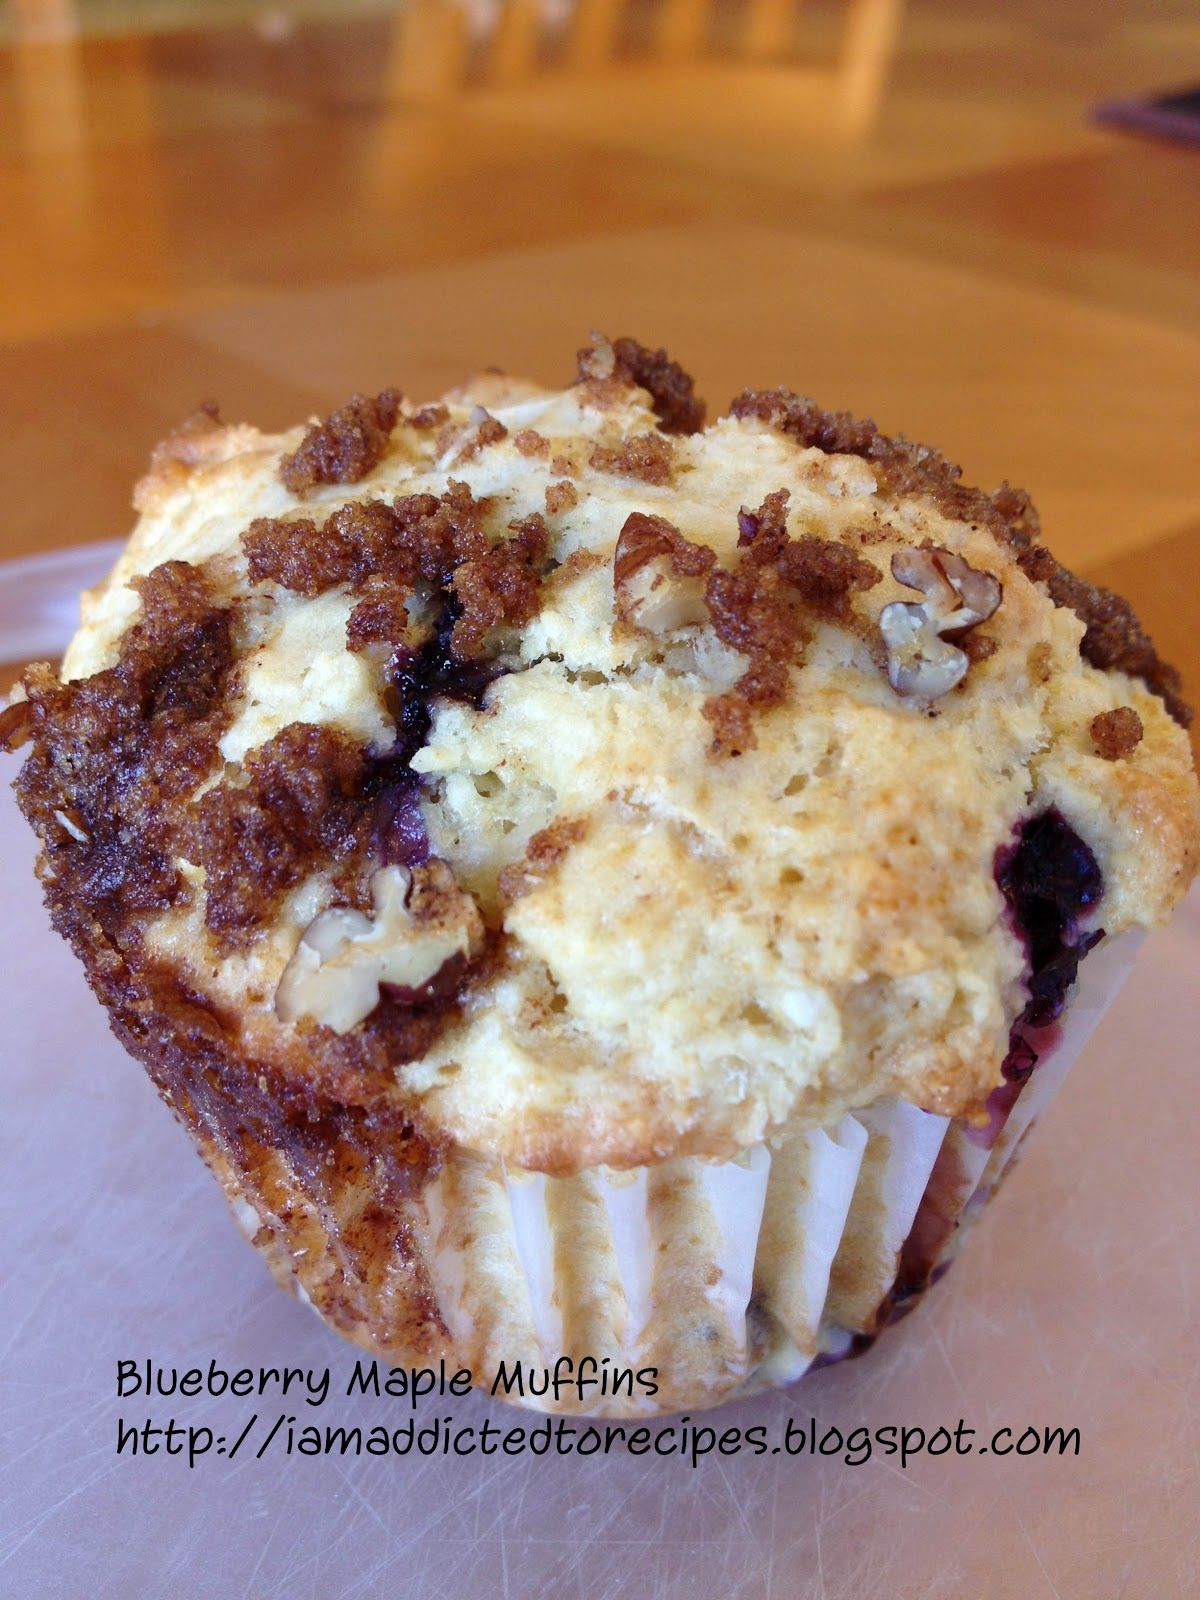 Addicted to Recipes: Blueberry Maple Muffins